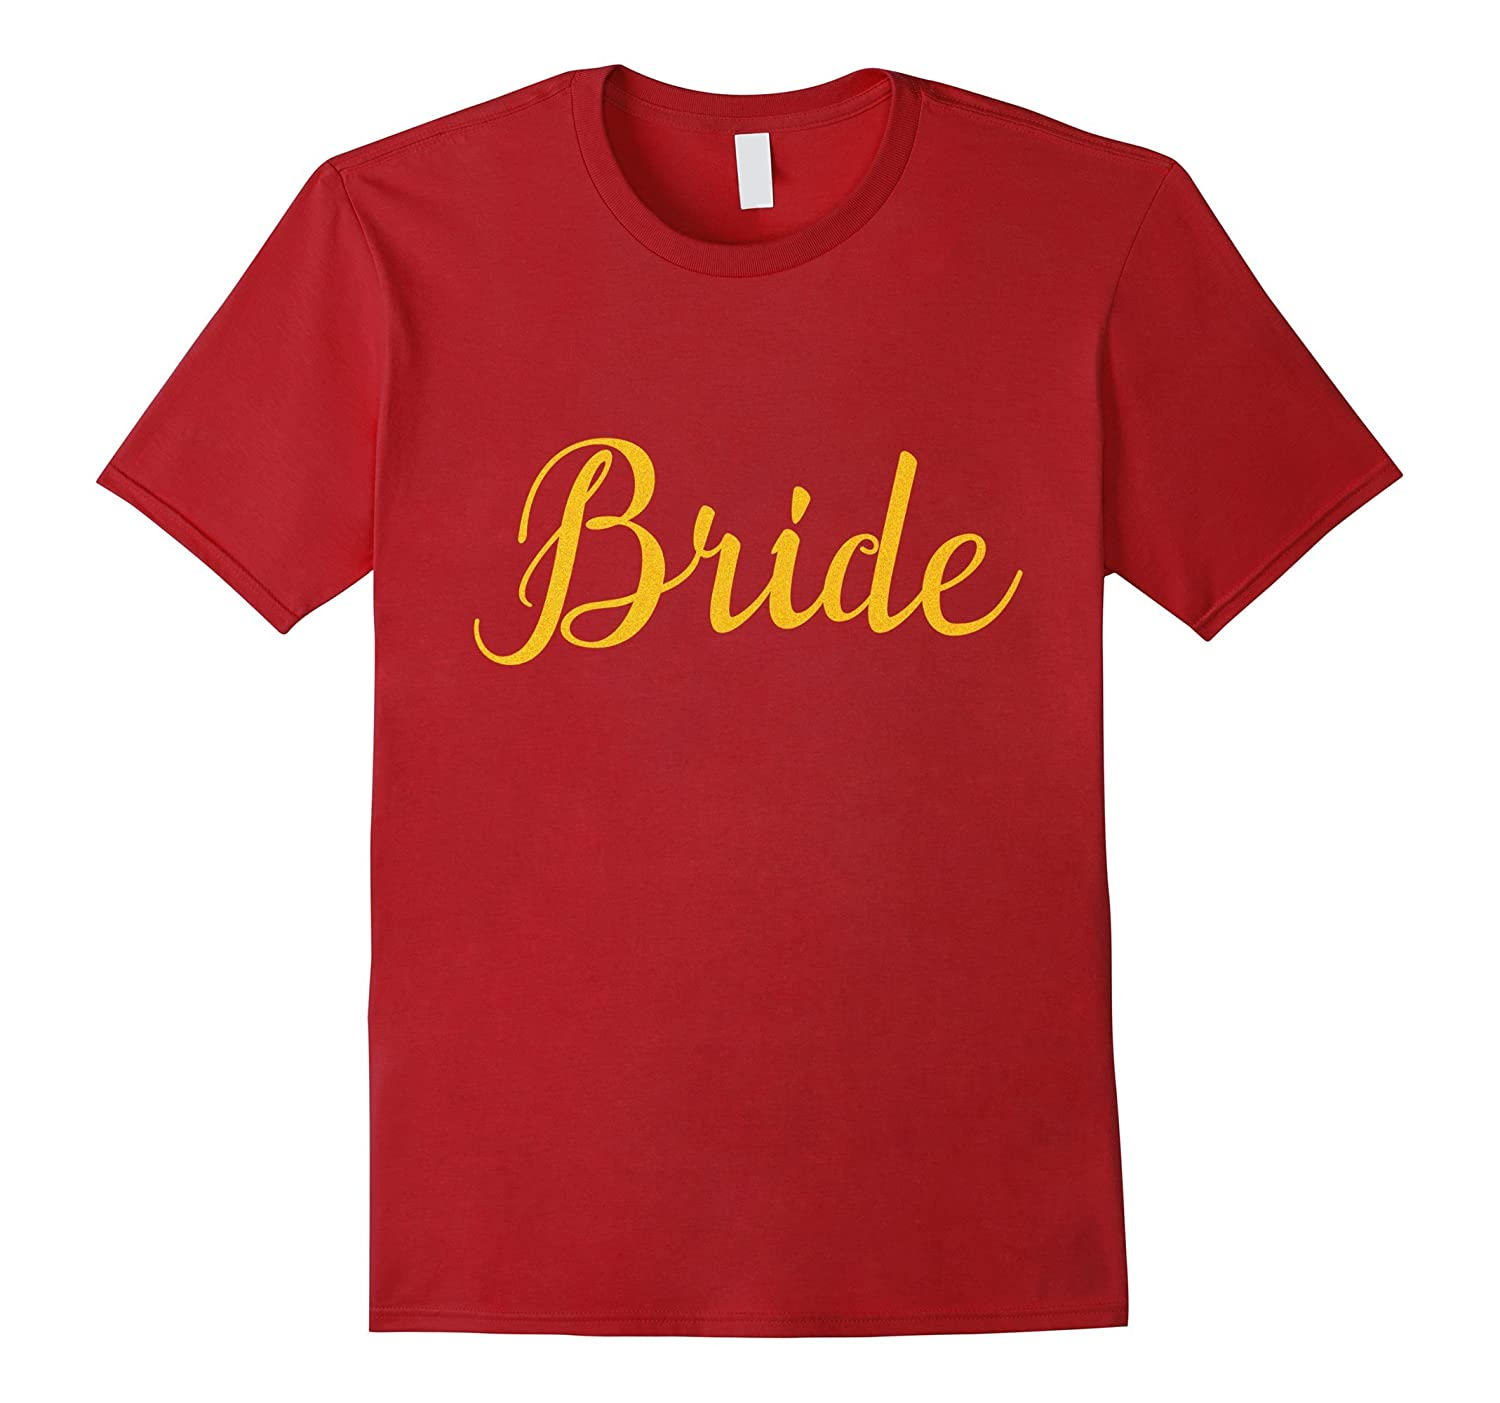 Bride Shirt-Vaci